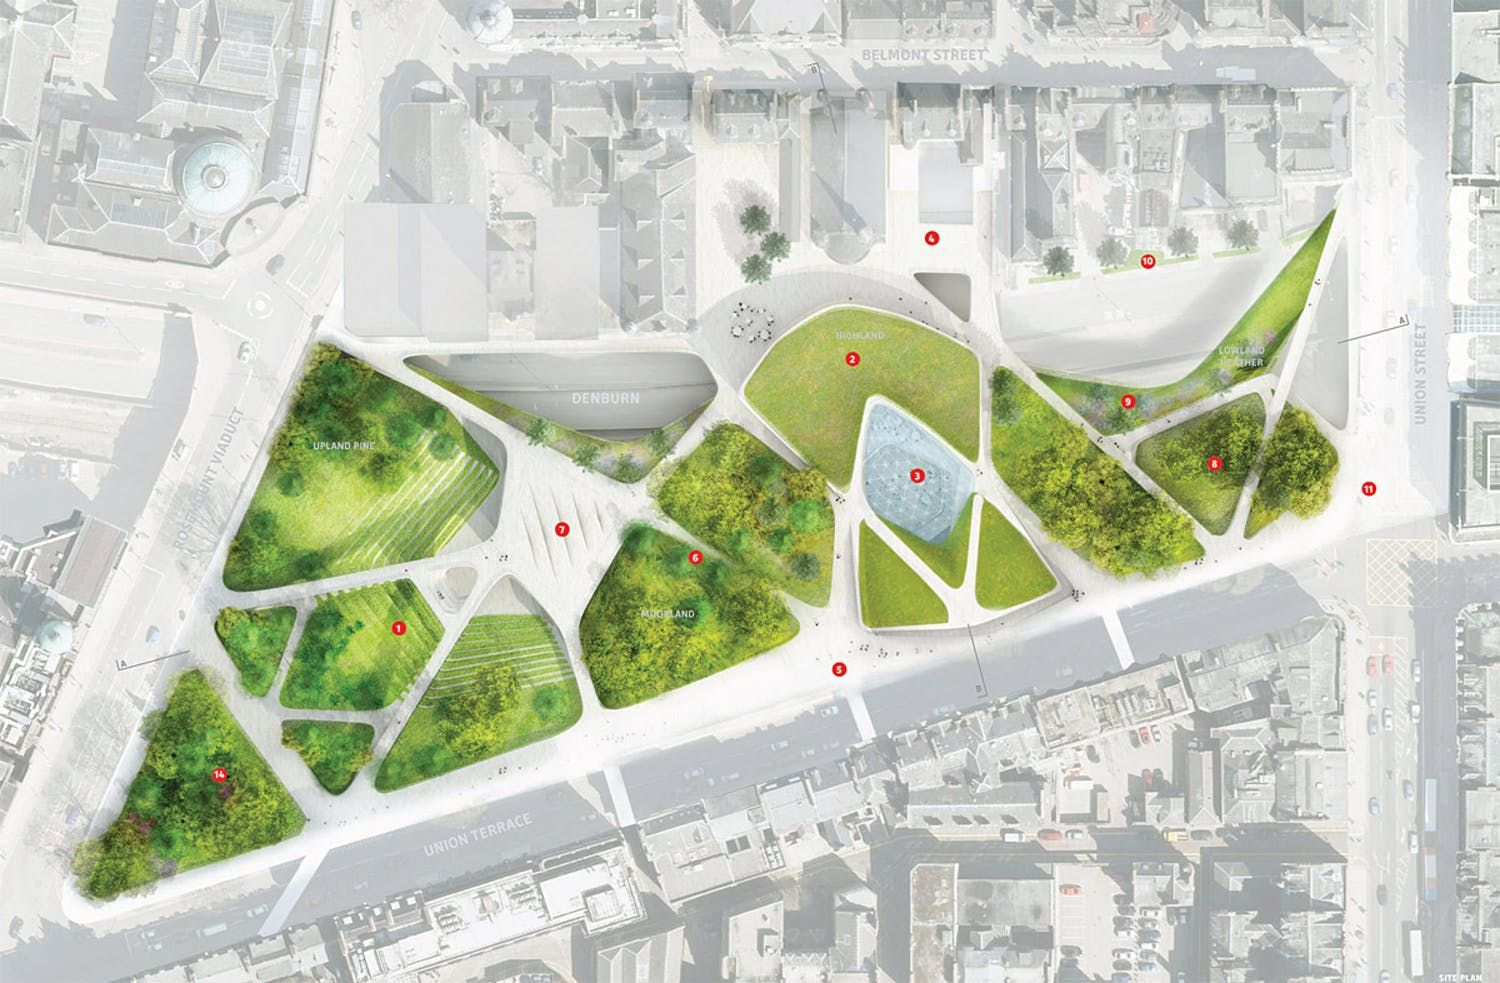 Diller Scofidio Renfro Beat Out Strong Competition At Aberdeen City Garden Project Landscape Plans Landscape Design Plans Landscape Design